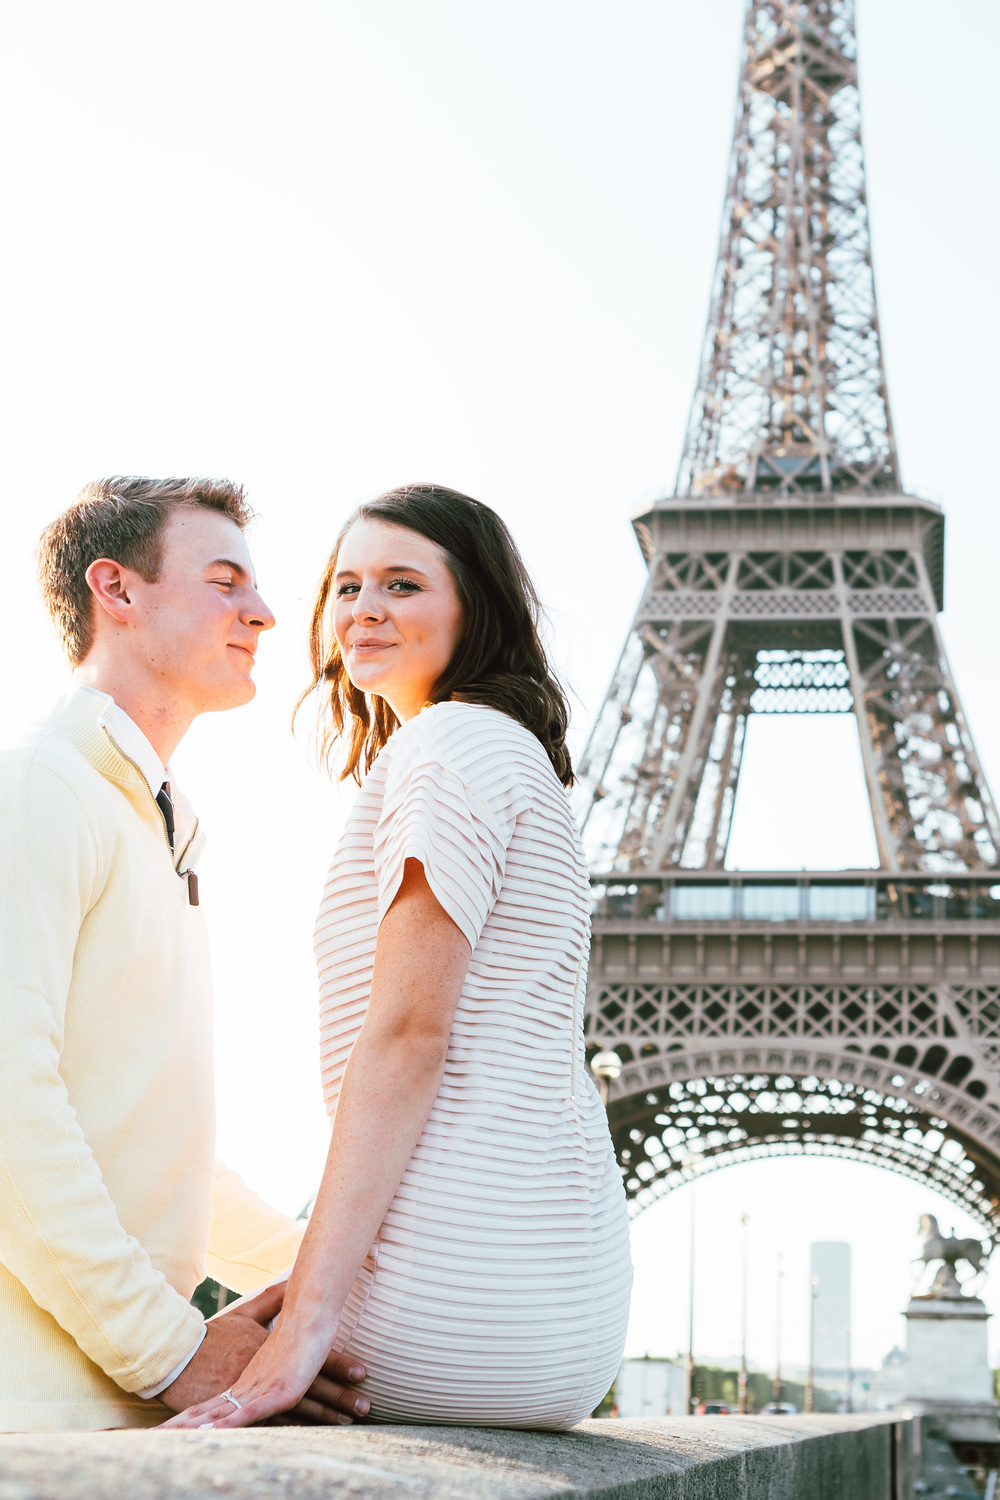 Photographer-In-Paris-Eiffel-Tower-Lovestory-Bridge-Iheartparisfr.jpg